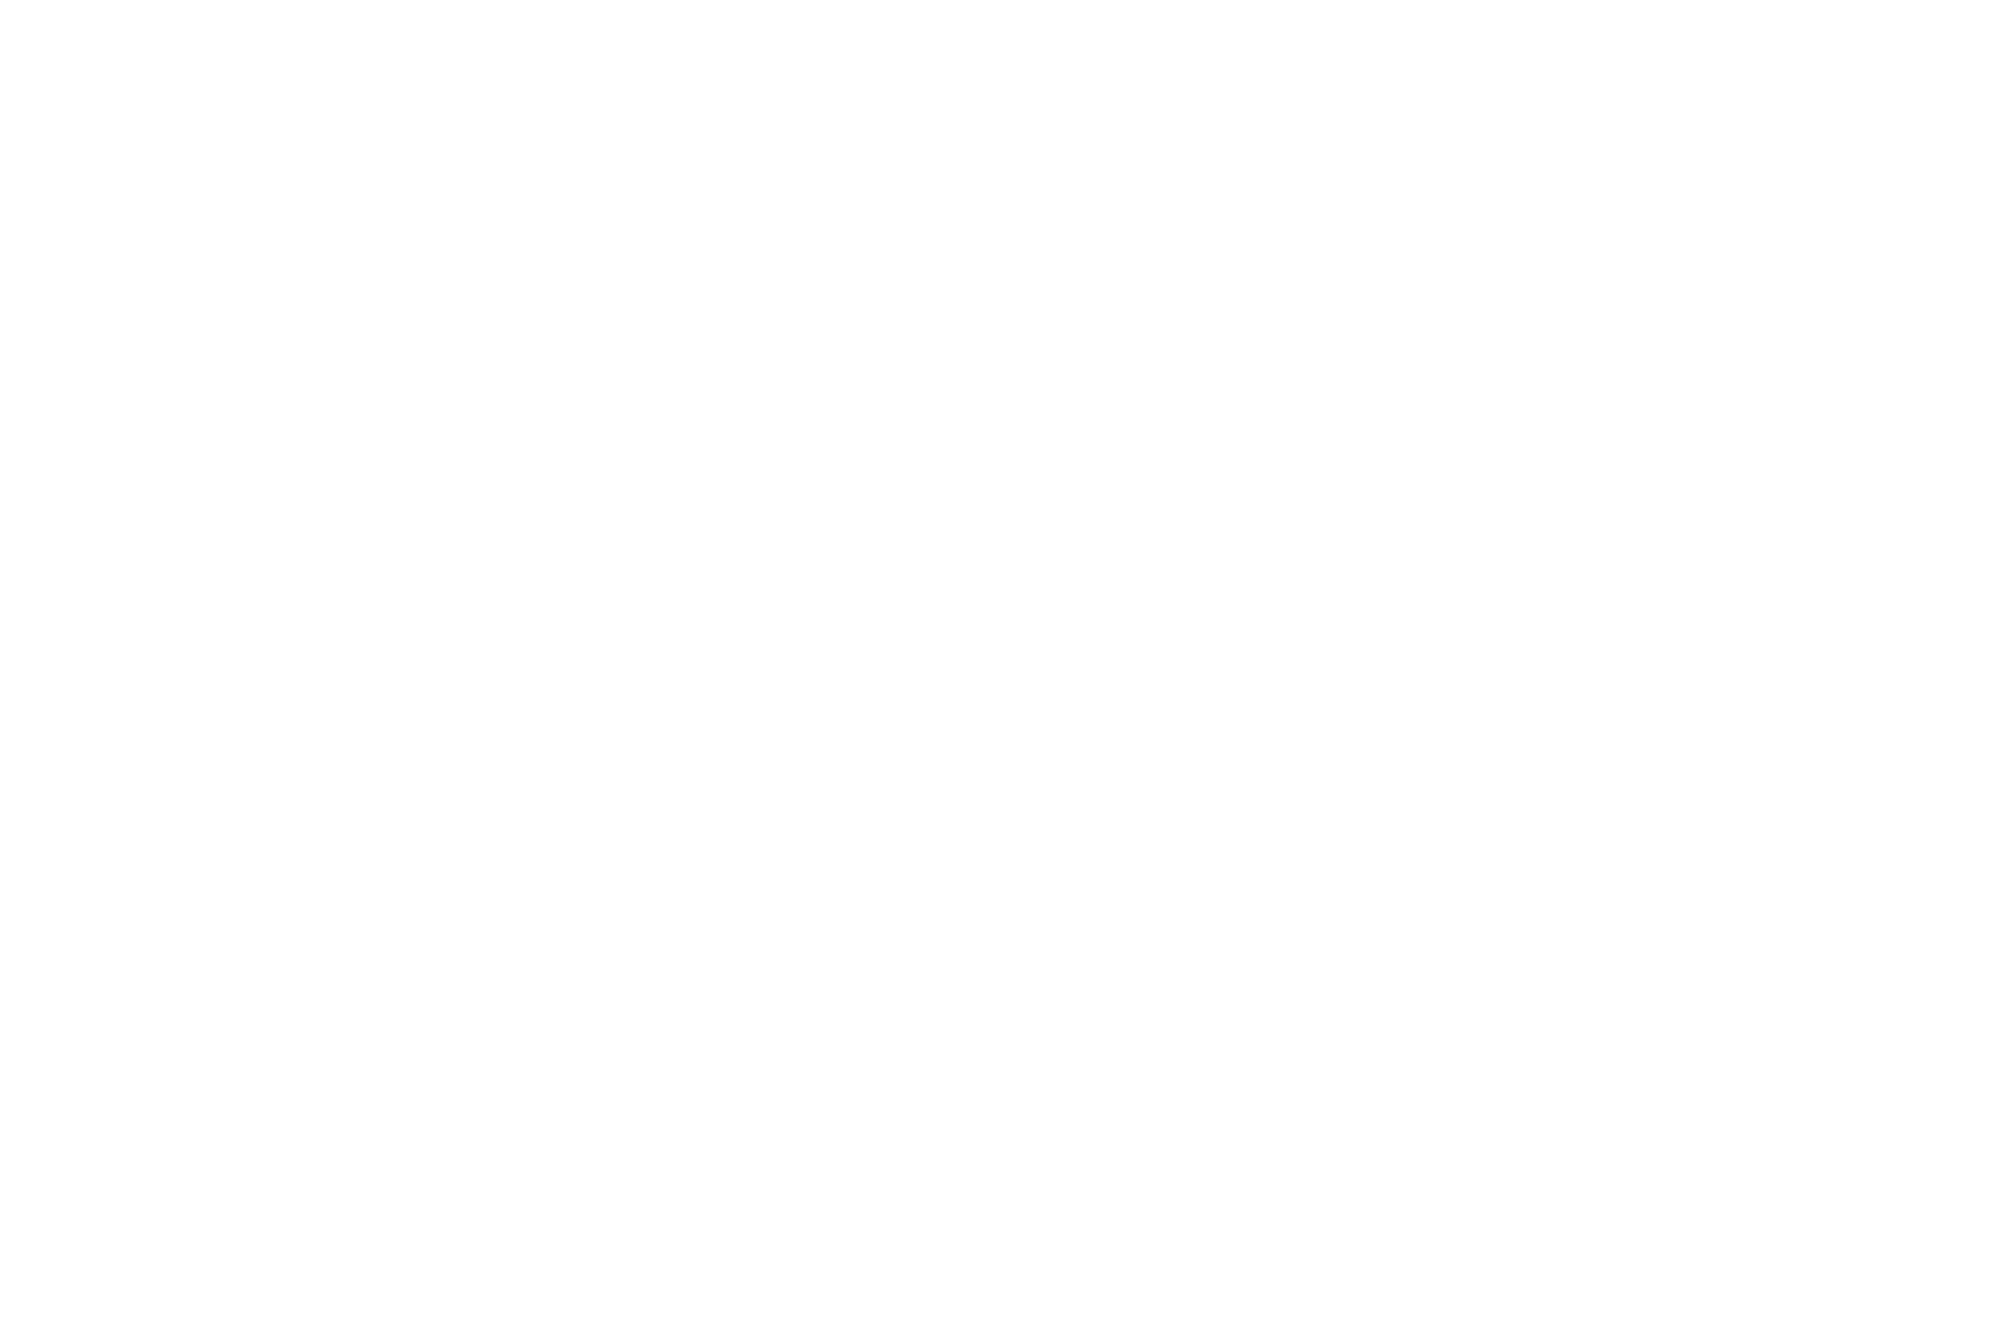 Drift Yoga